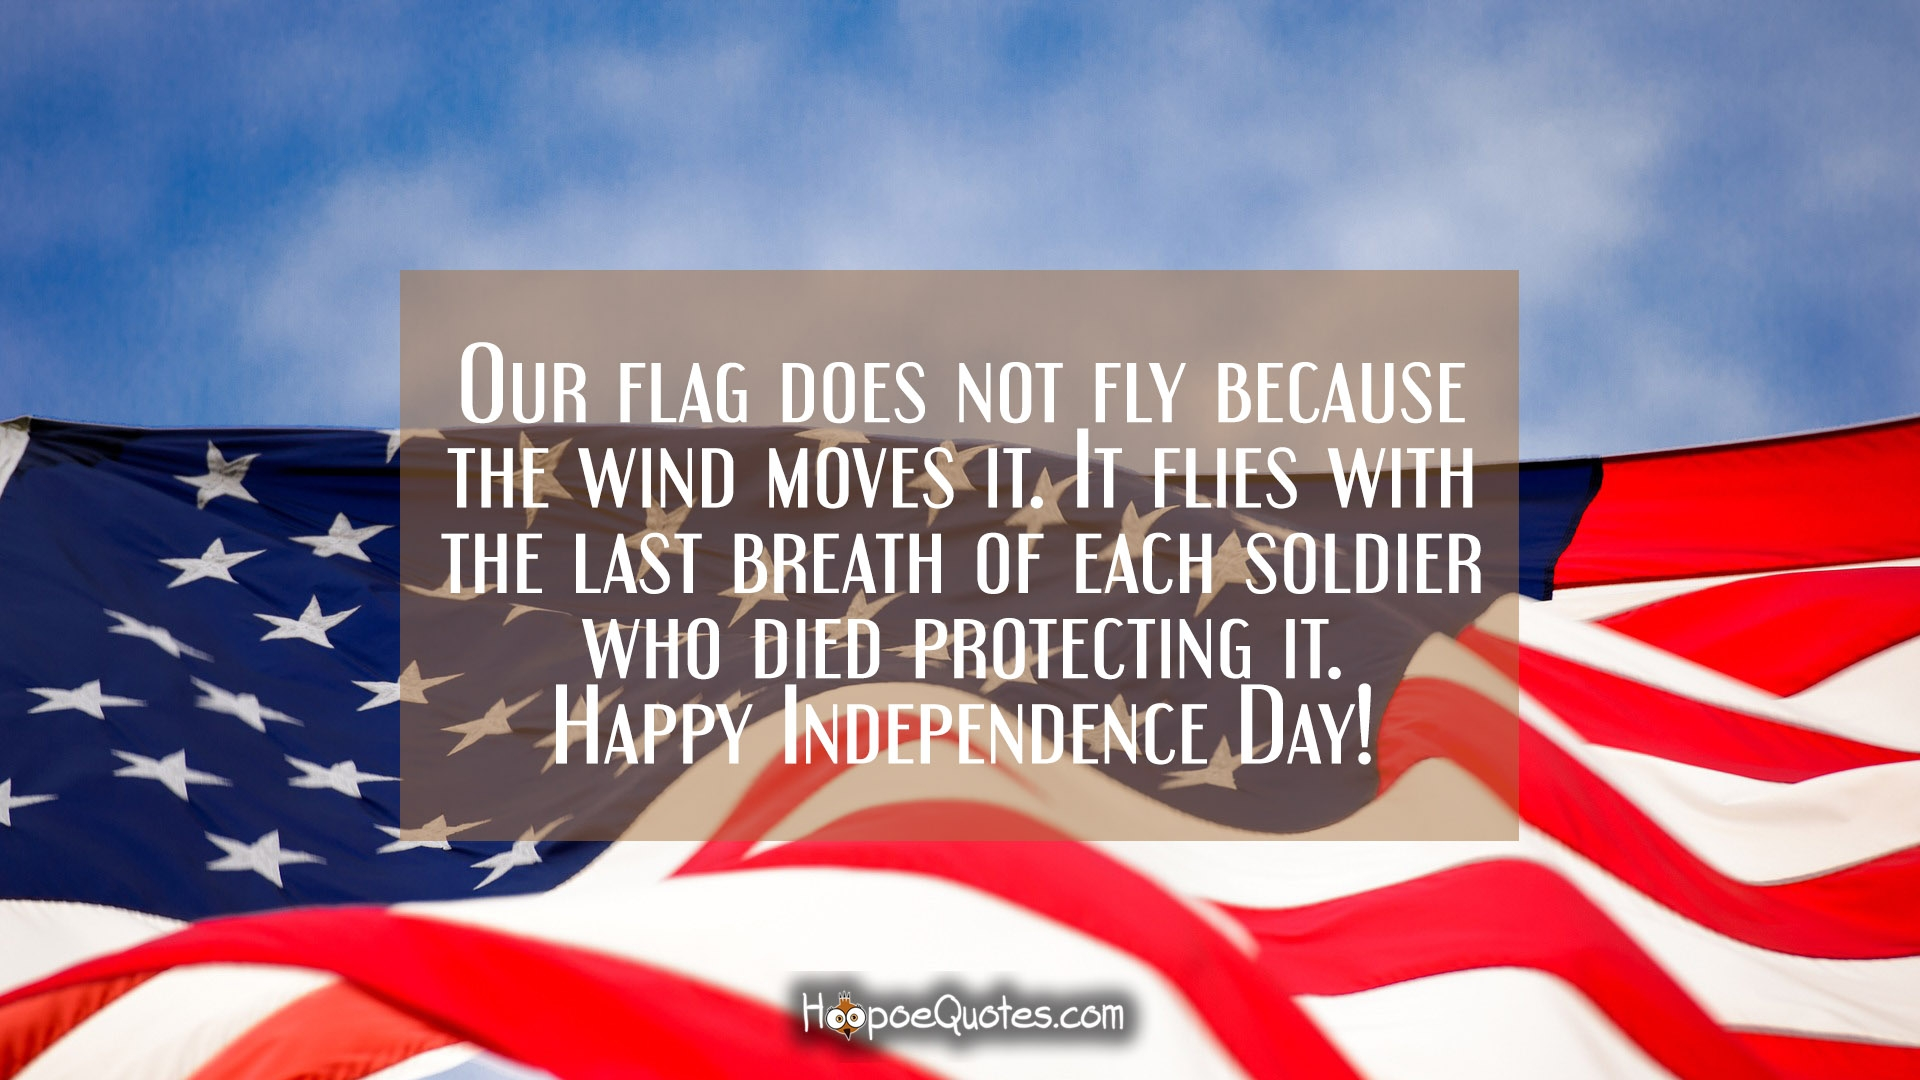 Our Flag Does Not Fly Because The Wind Moves It It Flies With The Last Breath Of Each Soldier